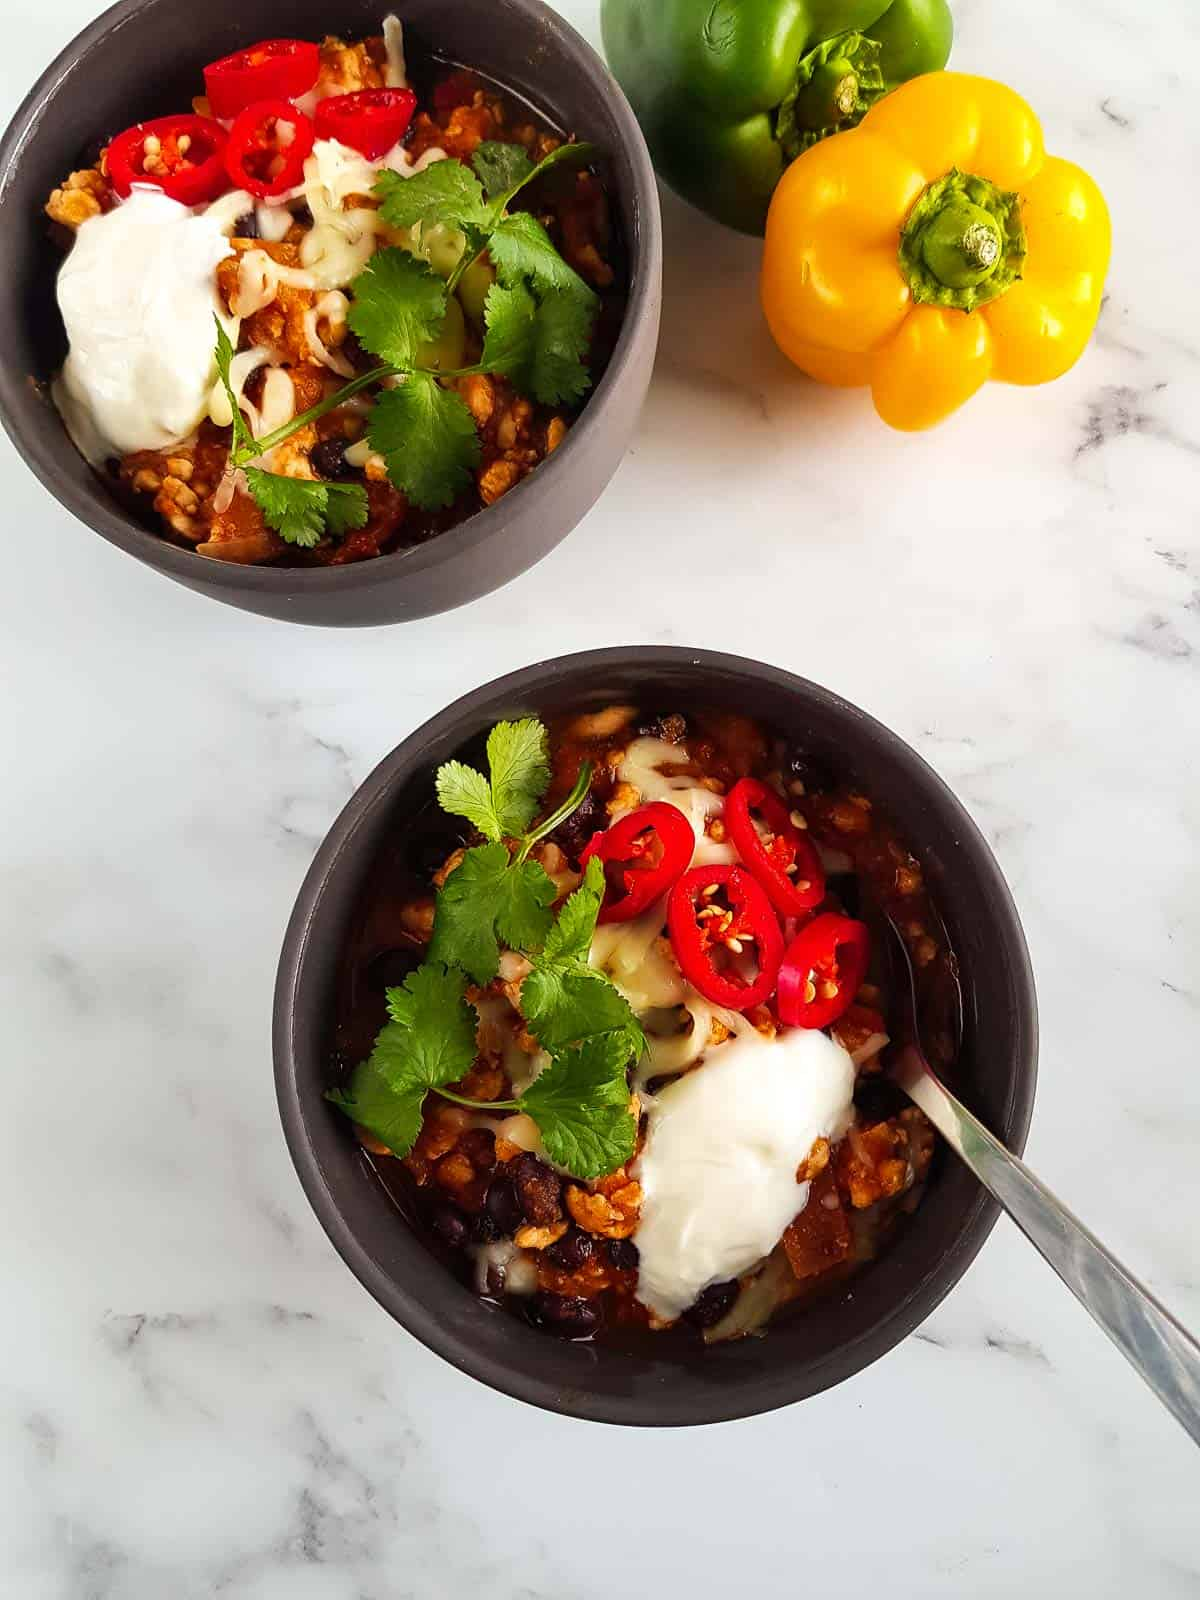 Overhead view of bowls filled with chili.